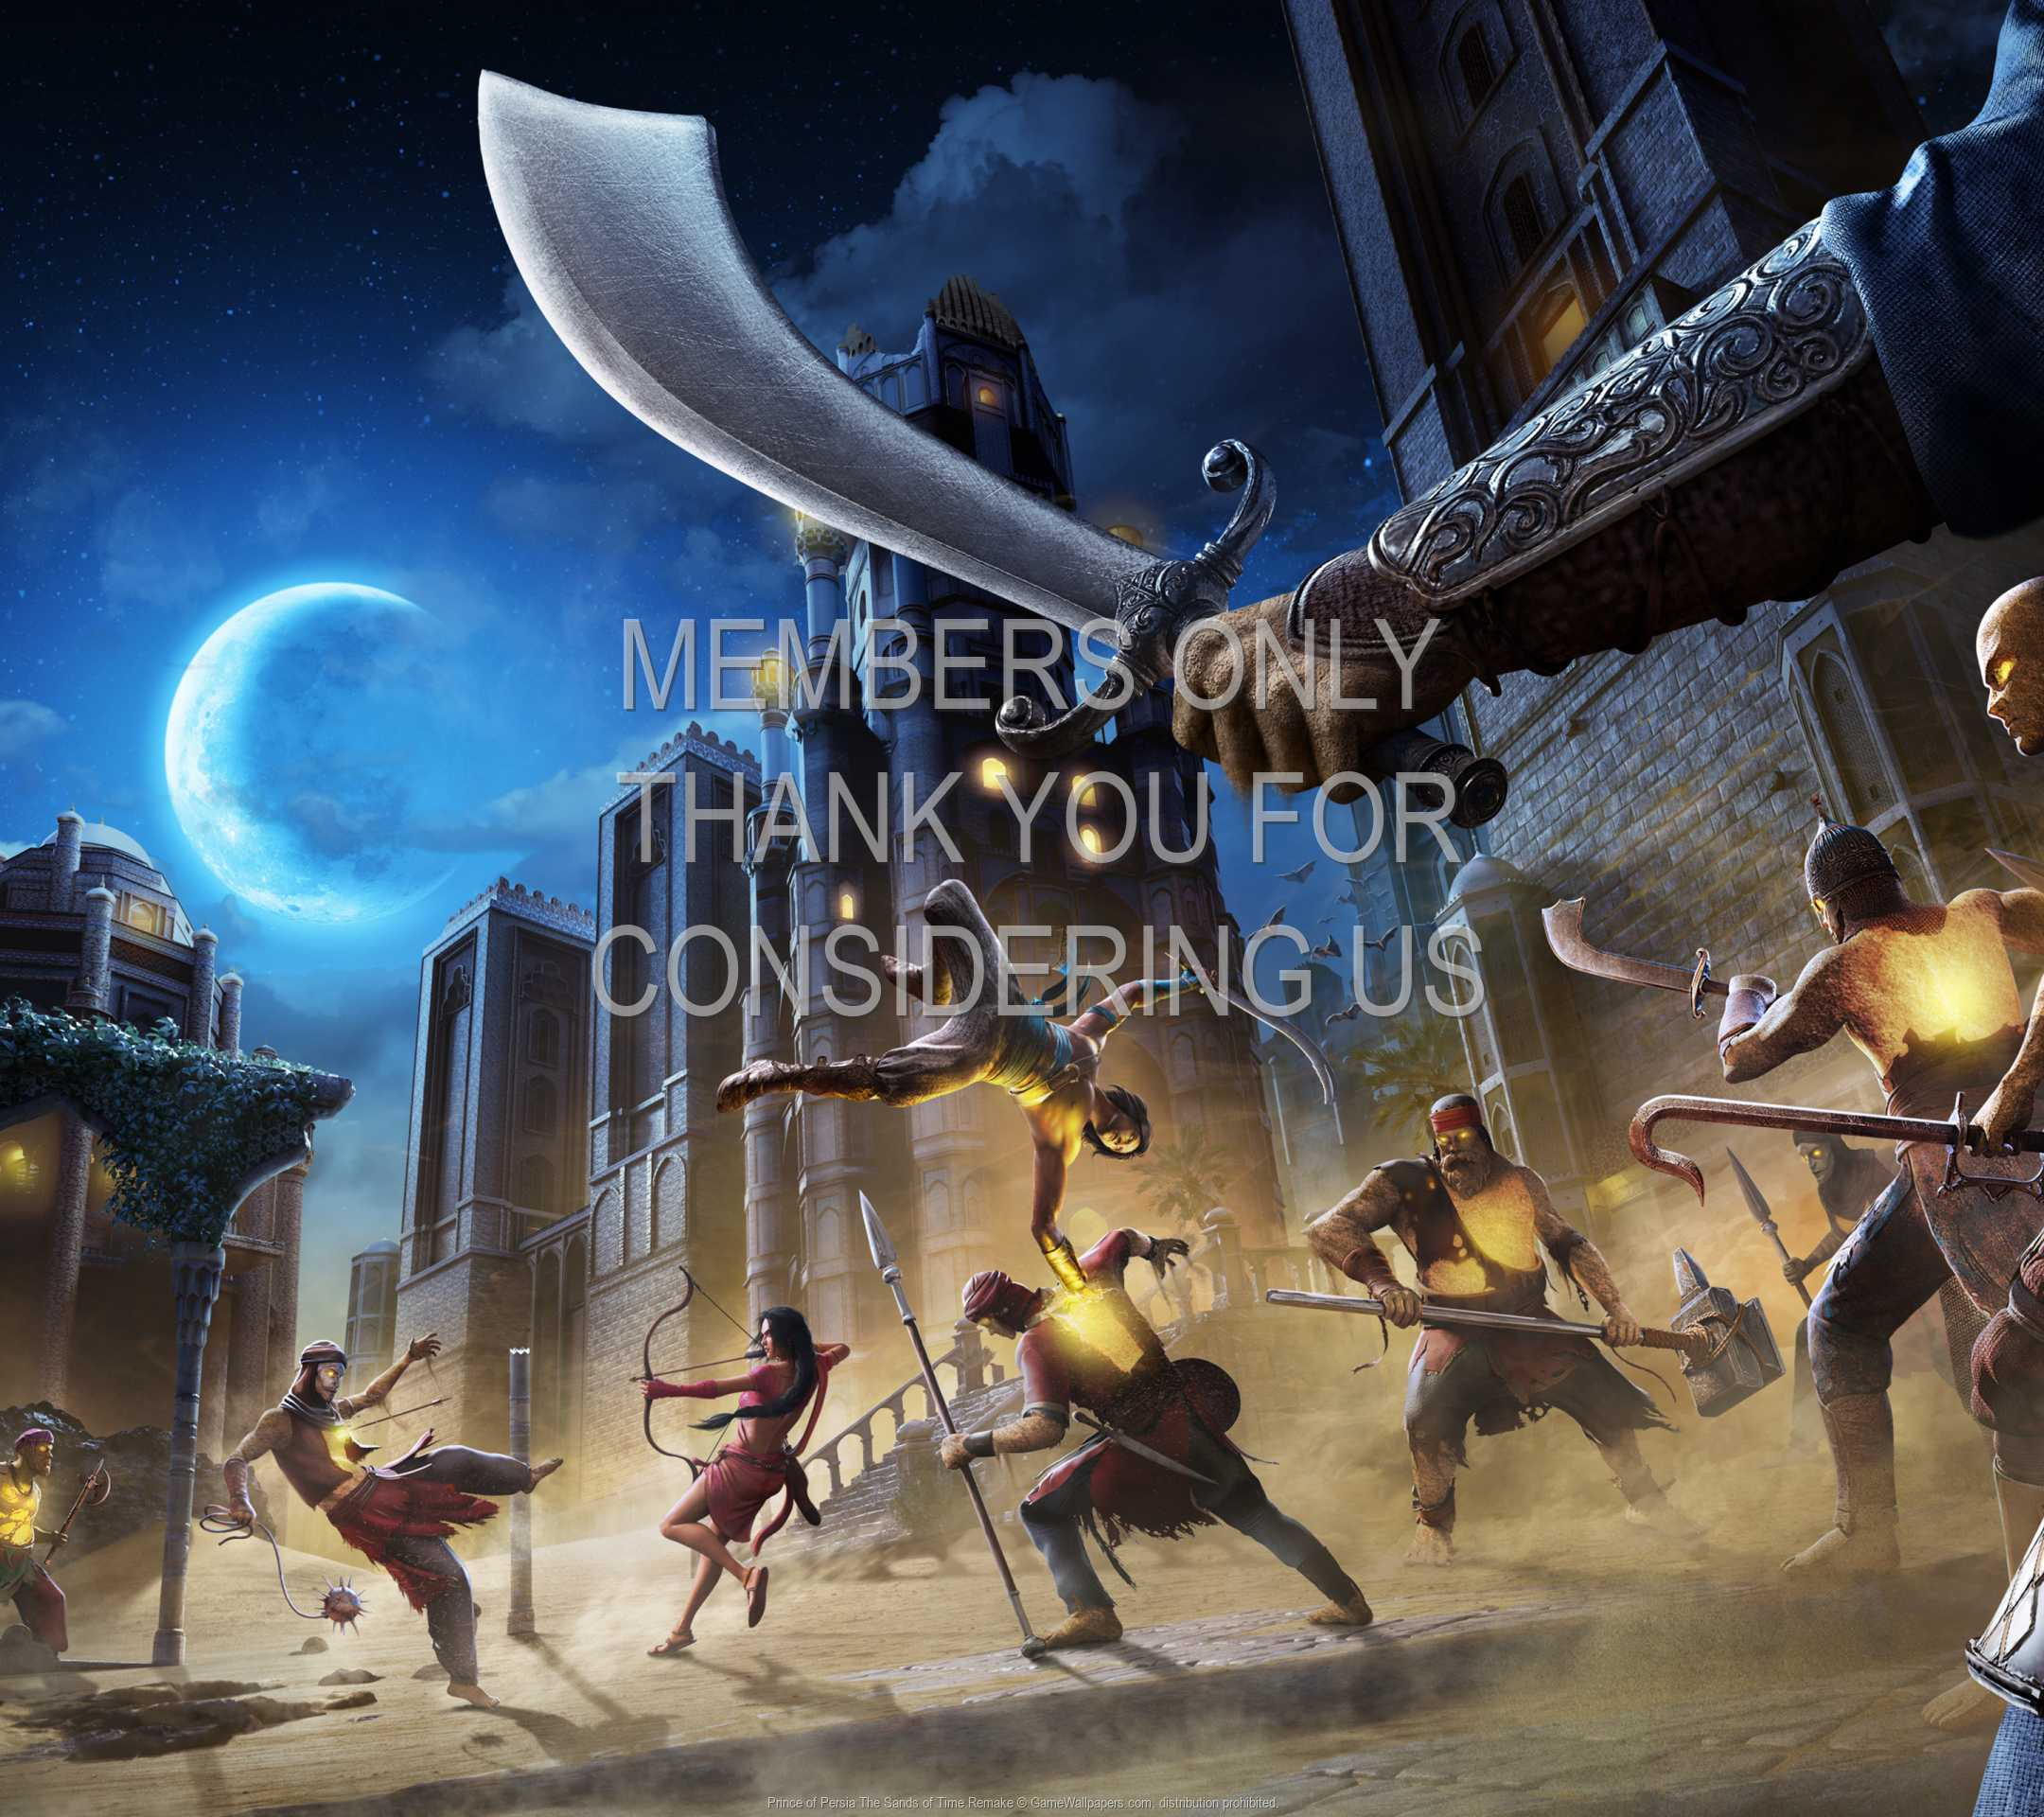 Prince of Persia: The Sands of Time Remake 1080p Horizontal Mobile fond d'écran 02